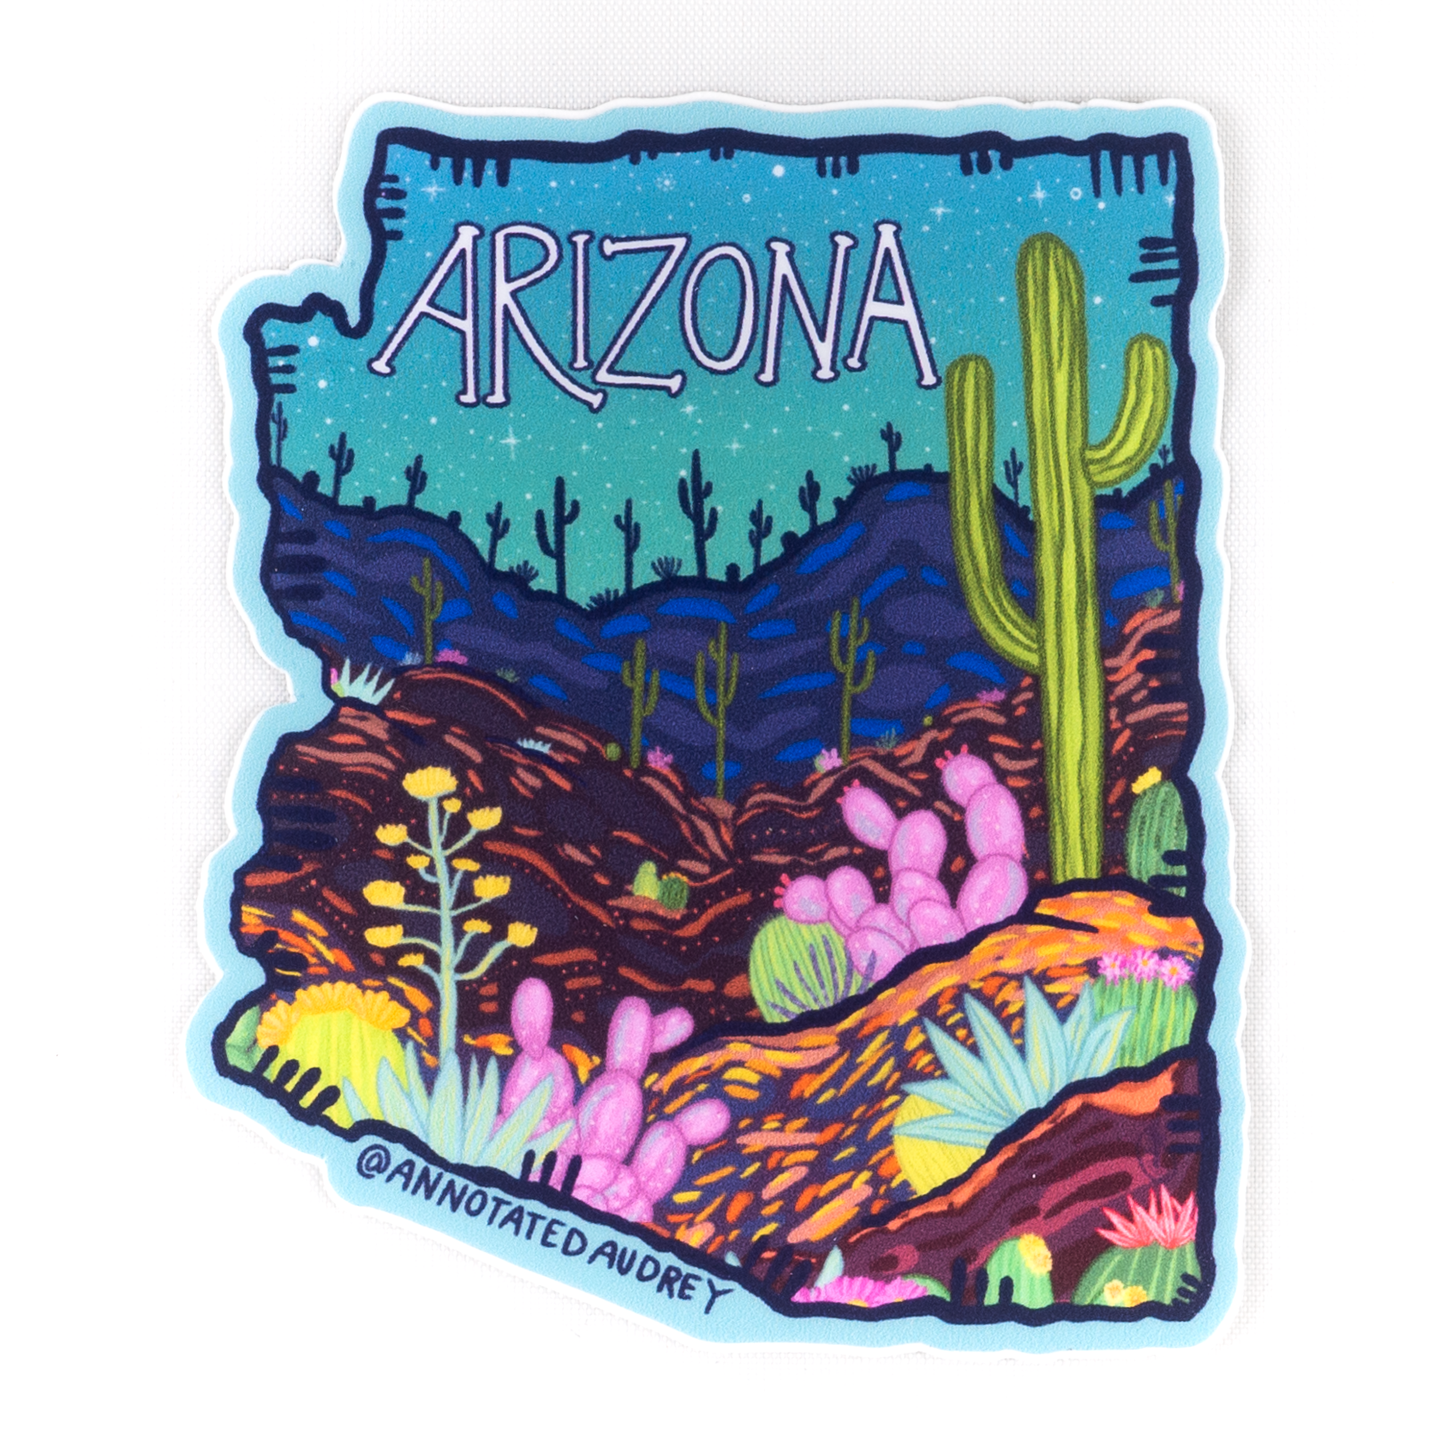 Arizona State Shaped Sticker With Night Sky Desert Scene